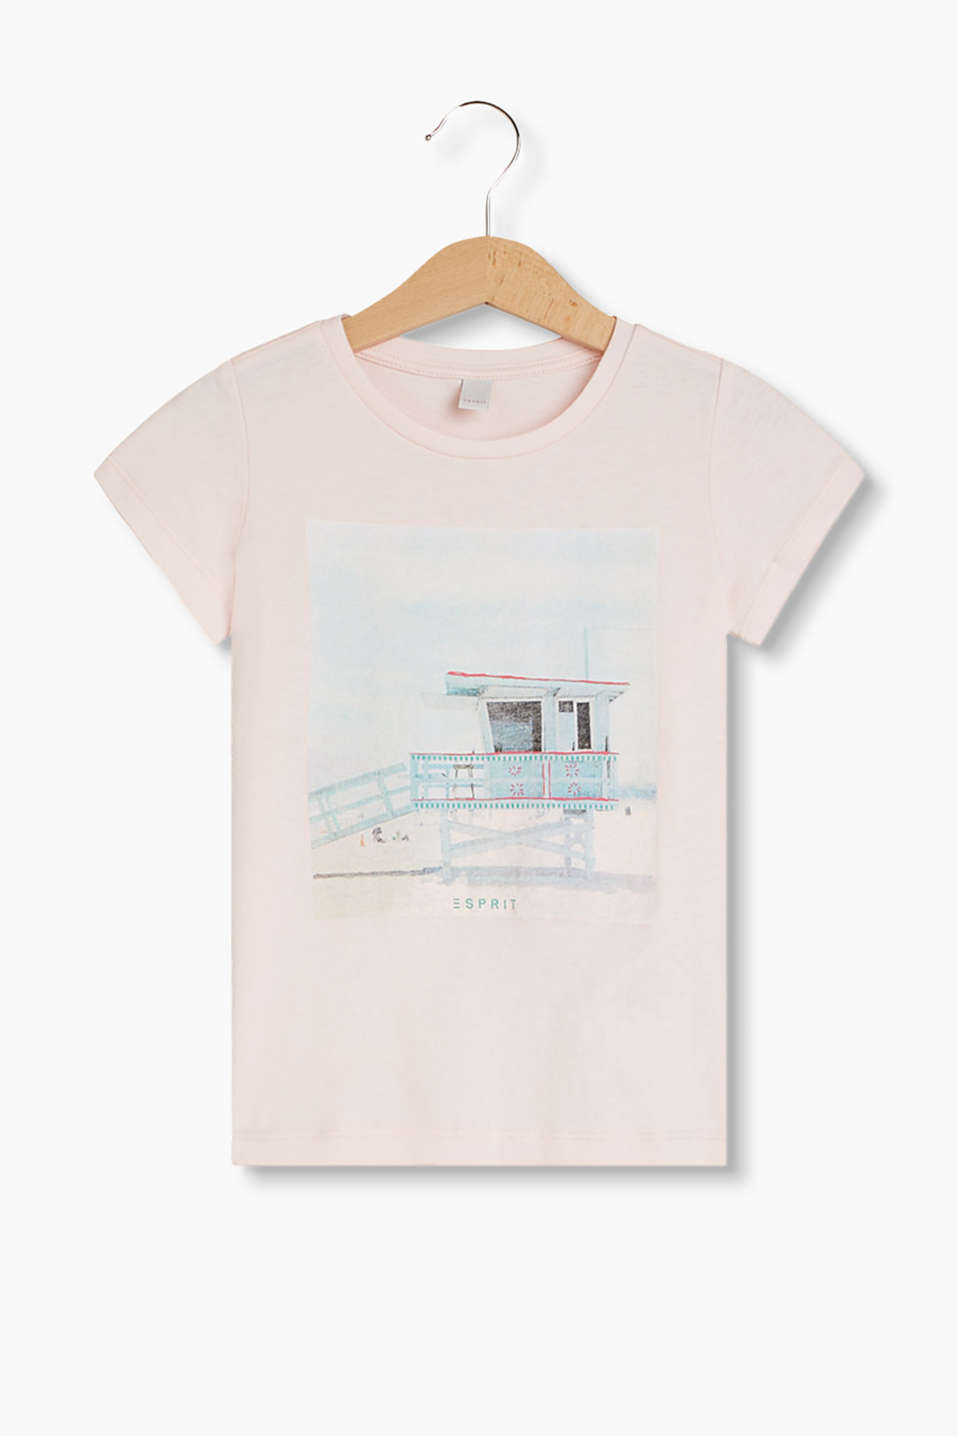 Esprit - Photo print T-shirt, 100% cotton